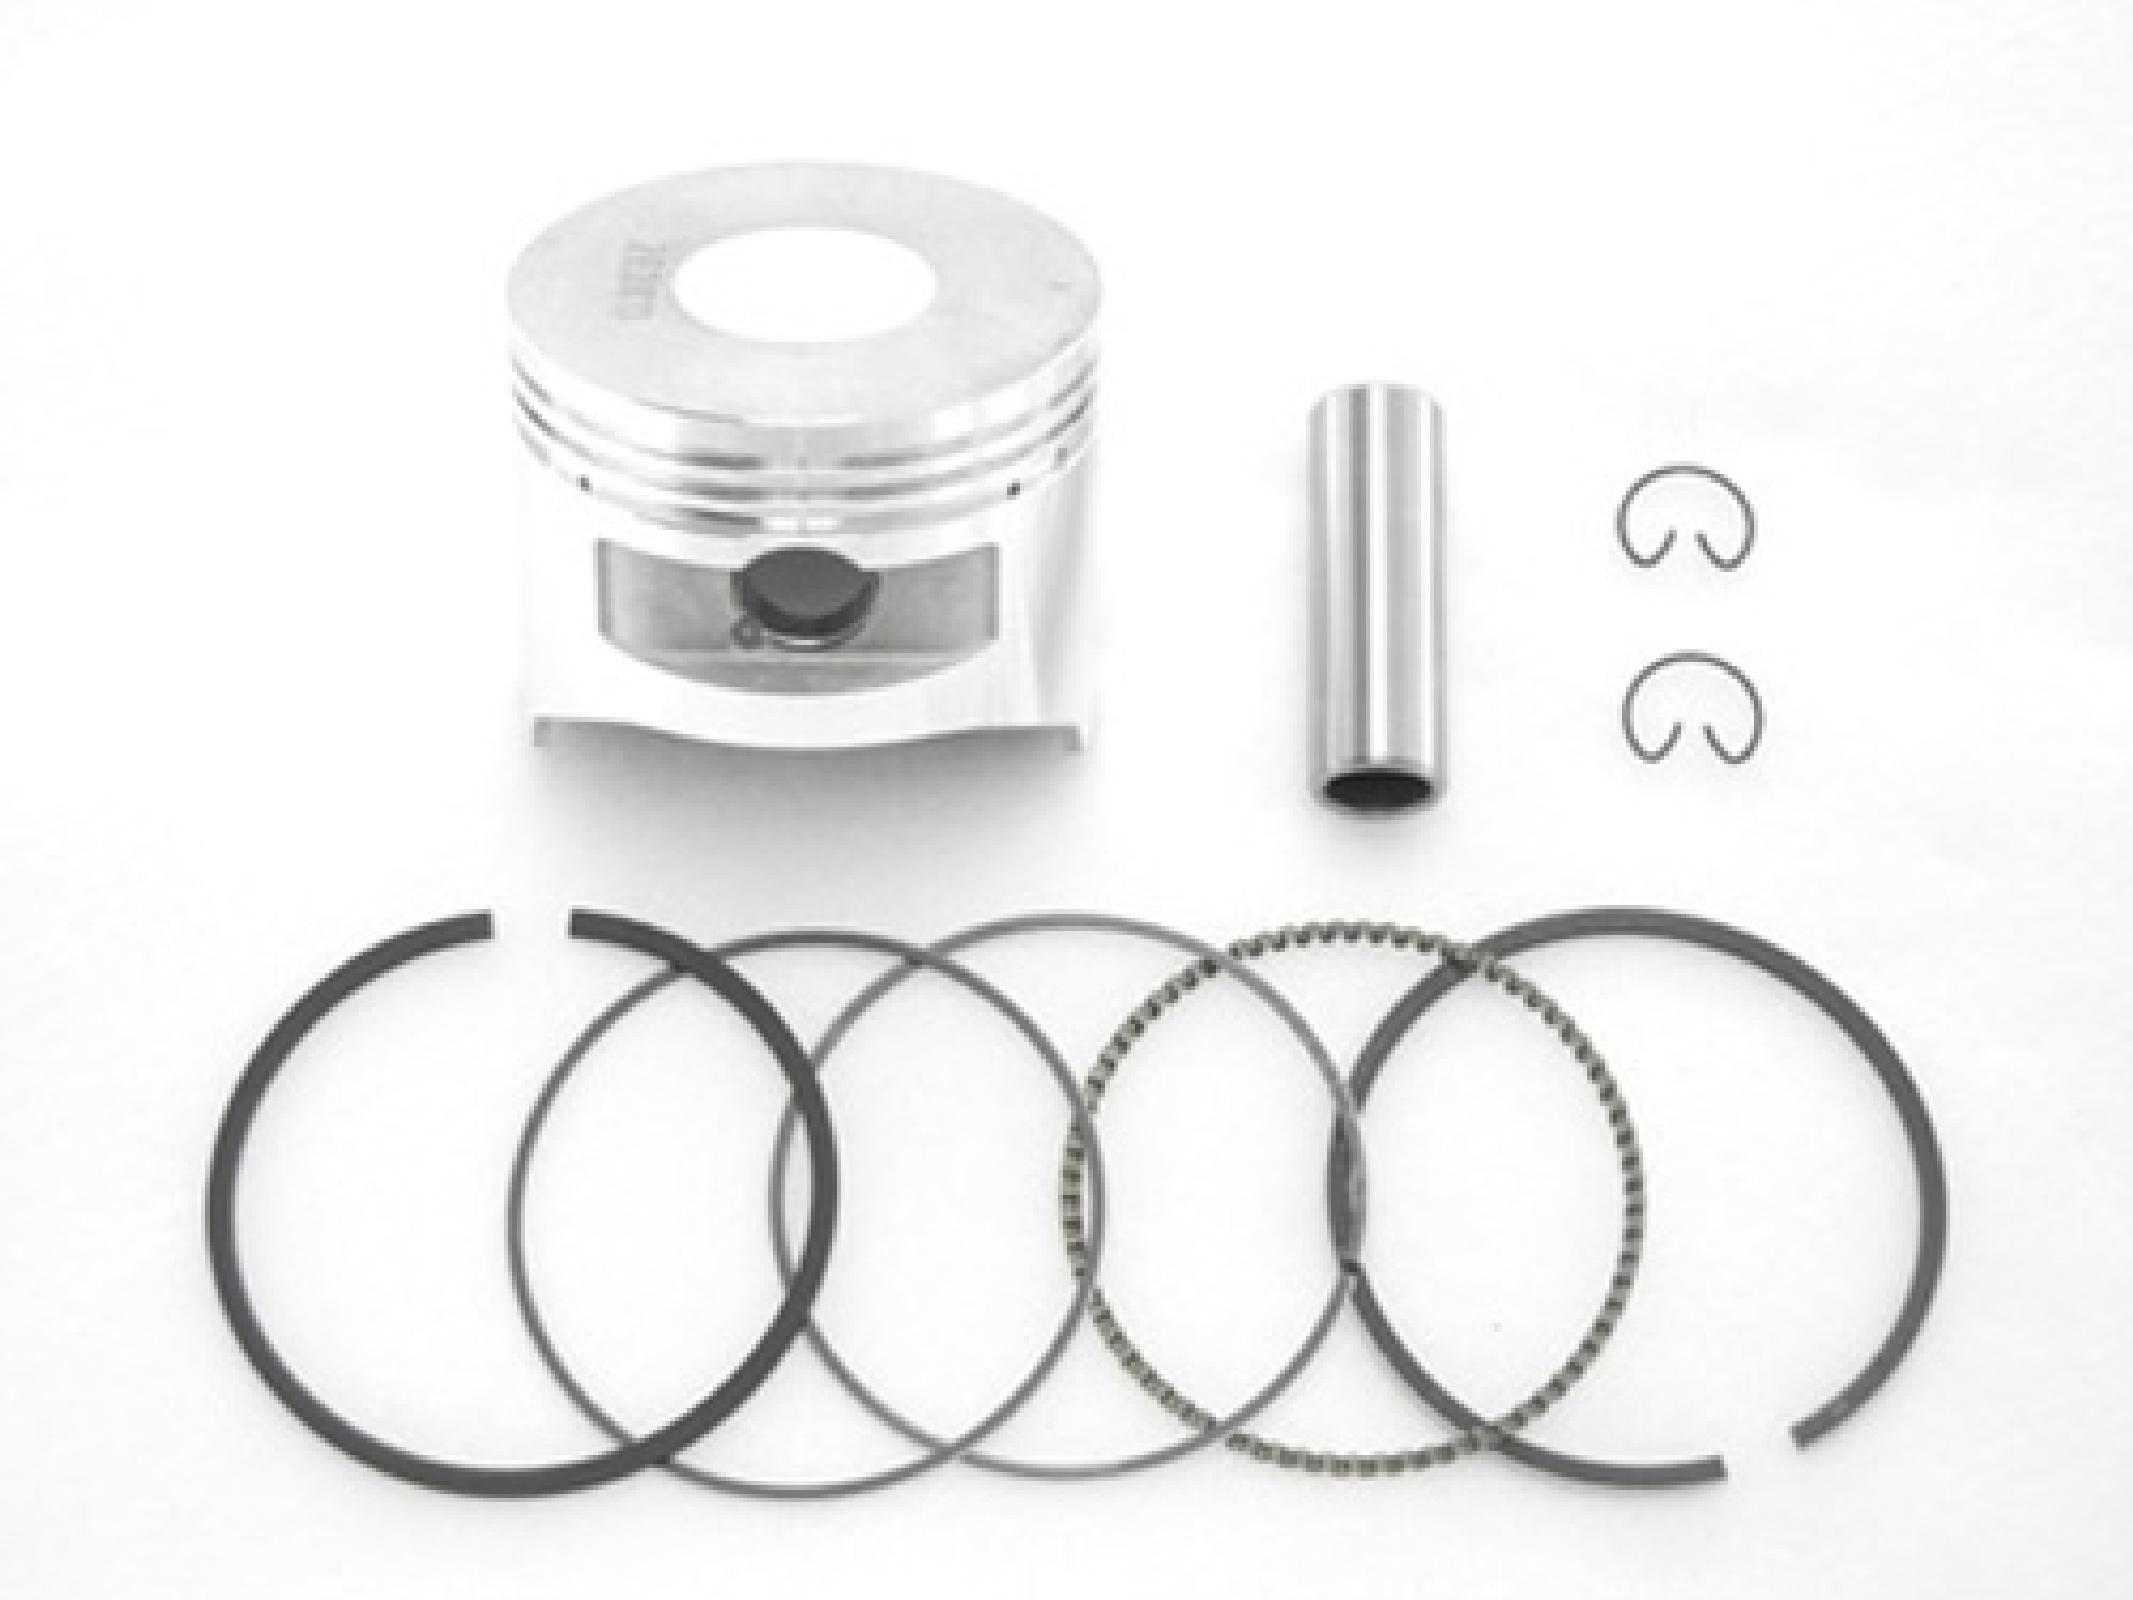 Honda GX240 Piston Kit Includes Rings, Pin and Clips